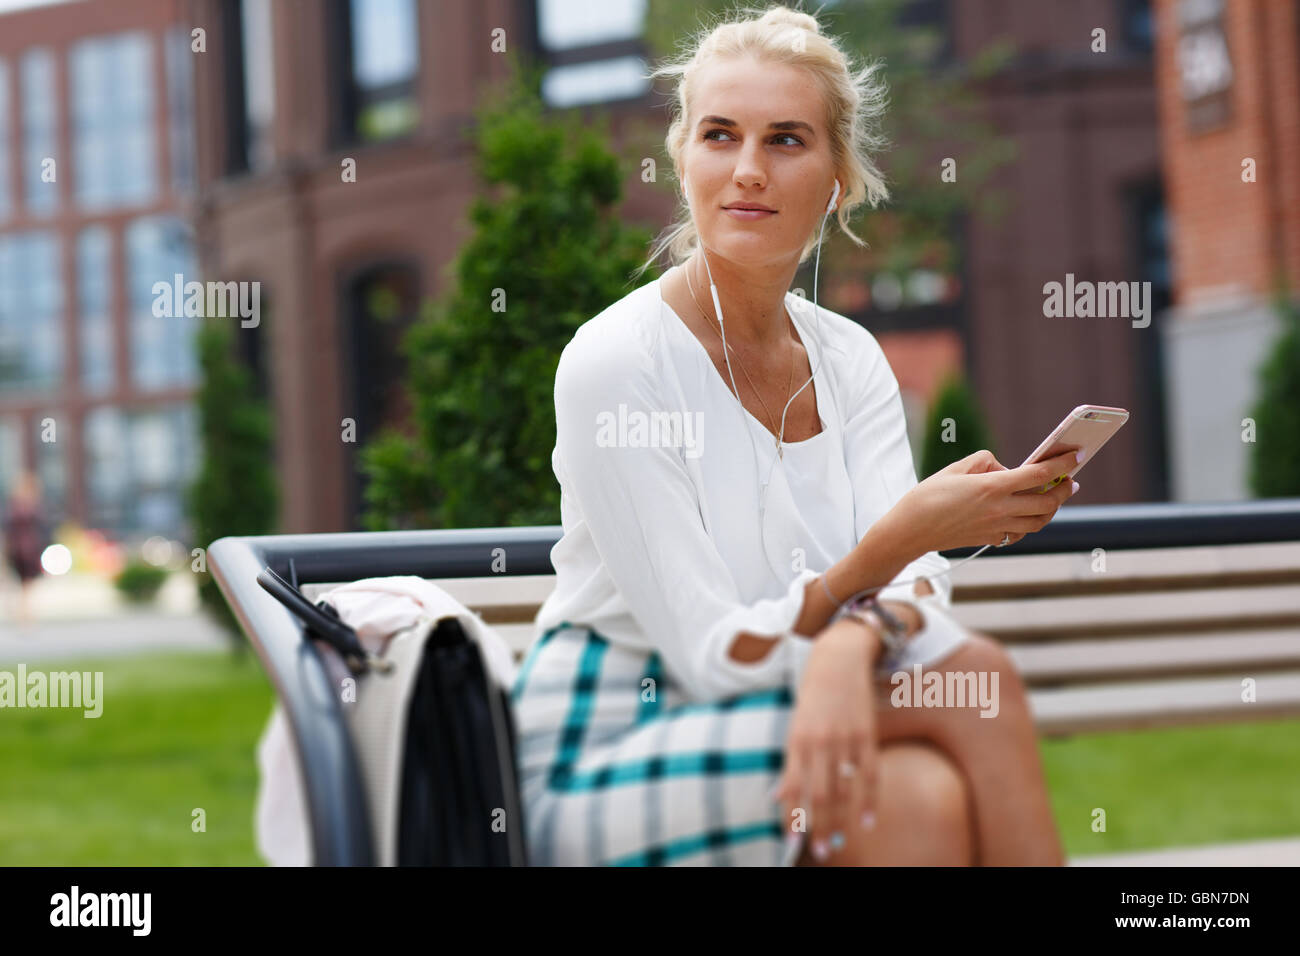 Tired pensive young woman leaning on sculpture outdoors - Stock Image